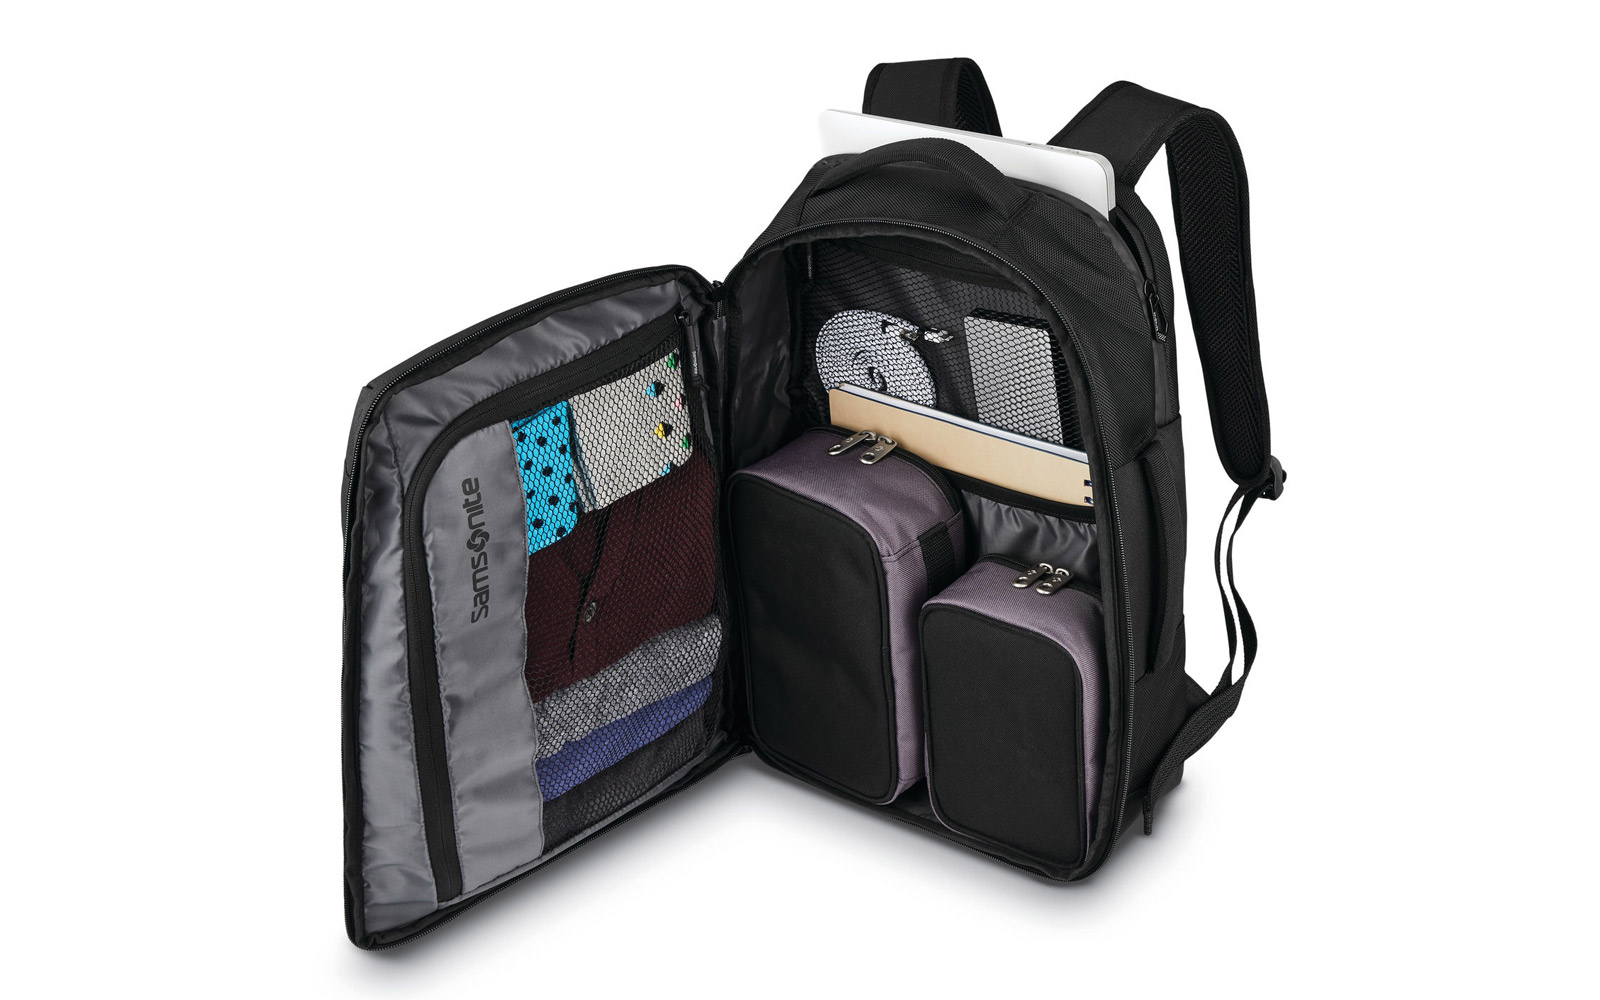 release date new cheap footwear The Best Carry-on Travel Backpacks | Travel + Leisure